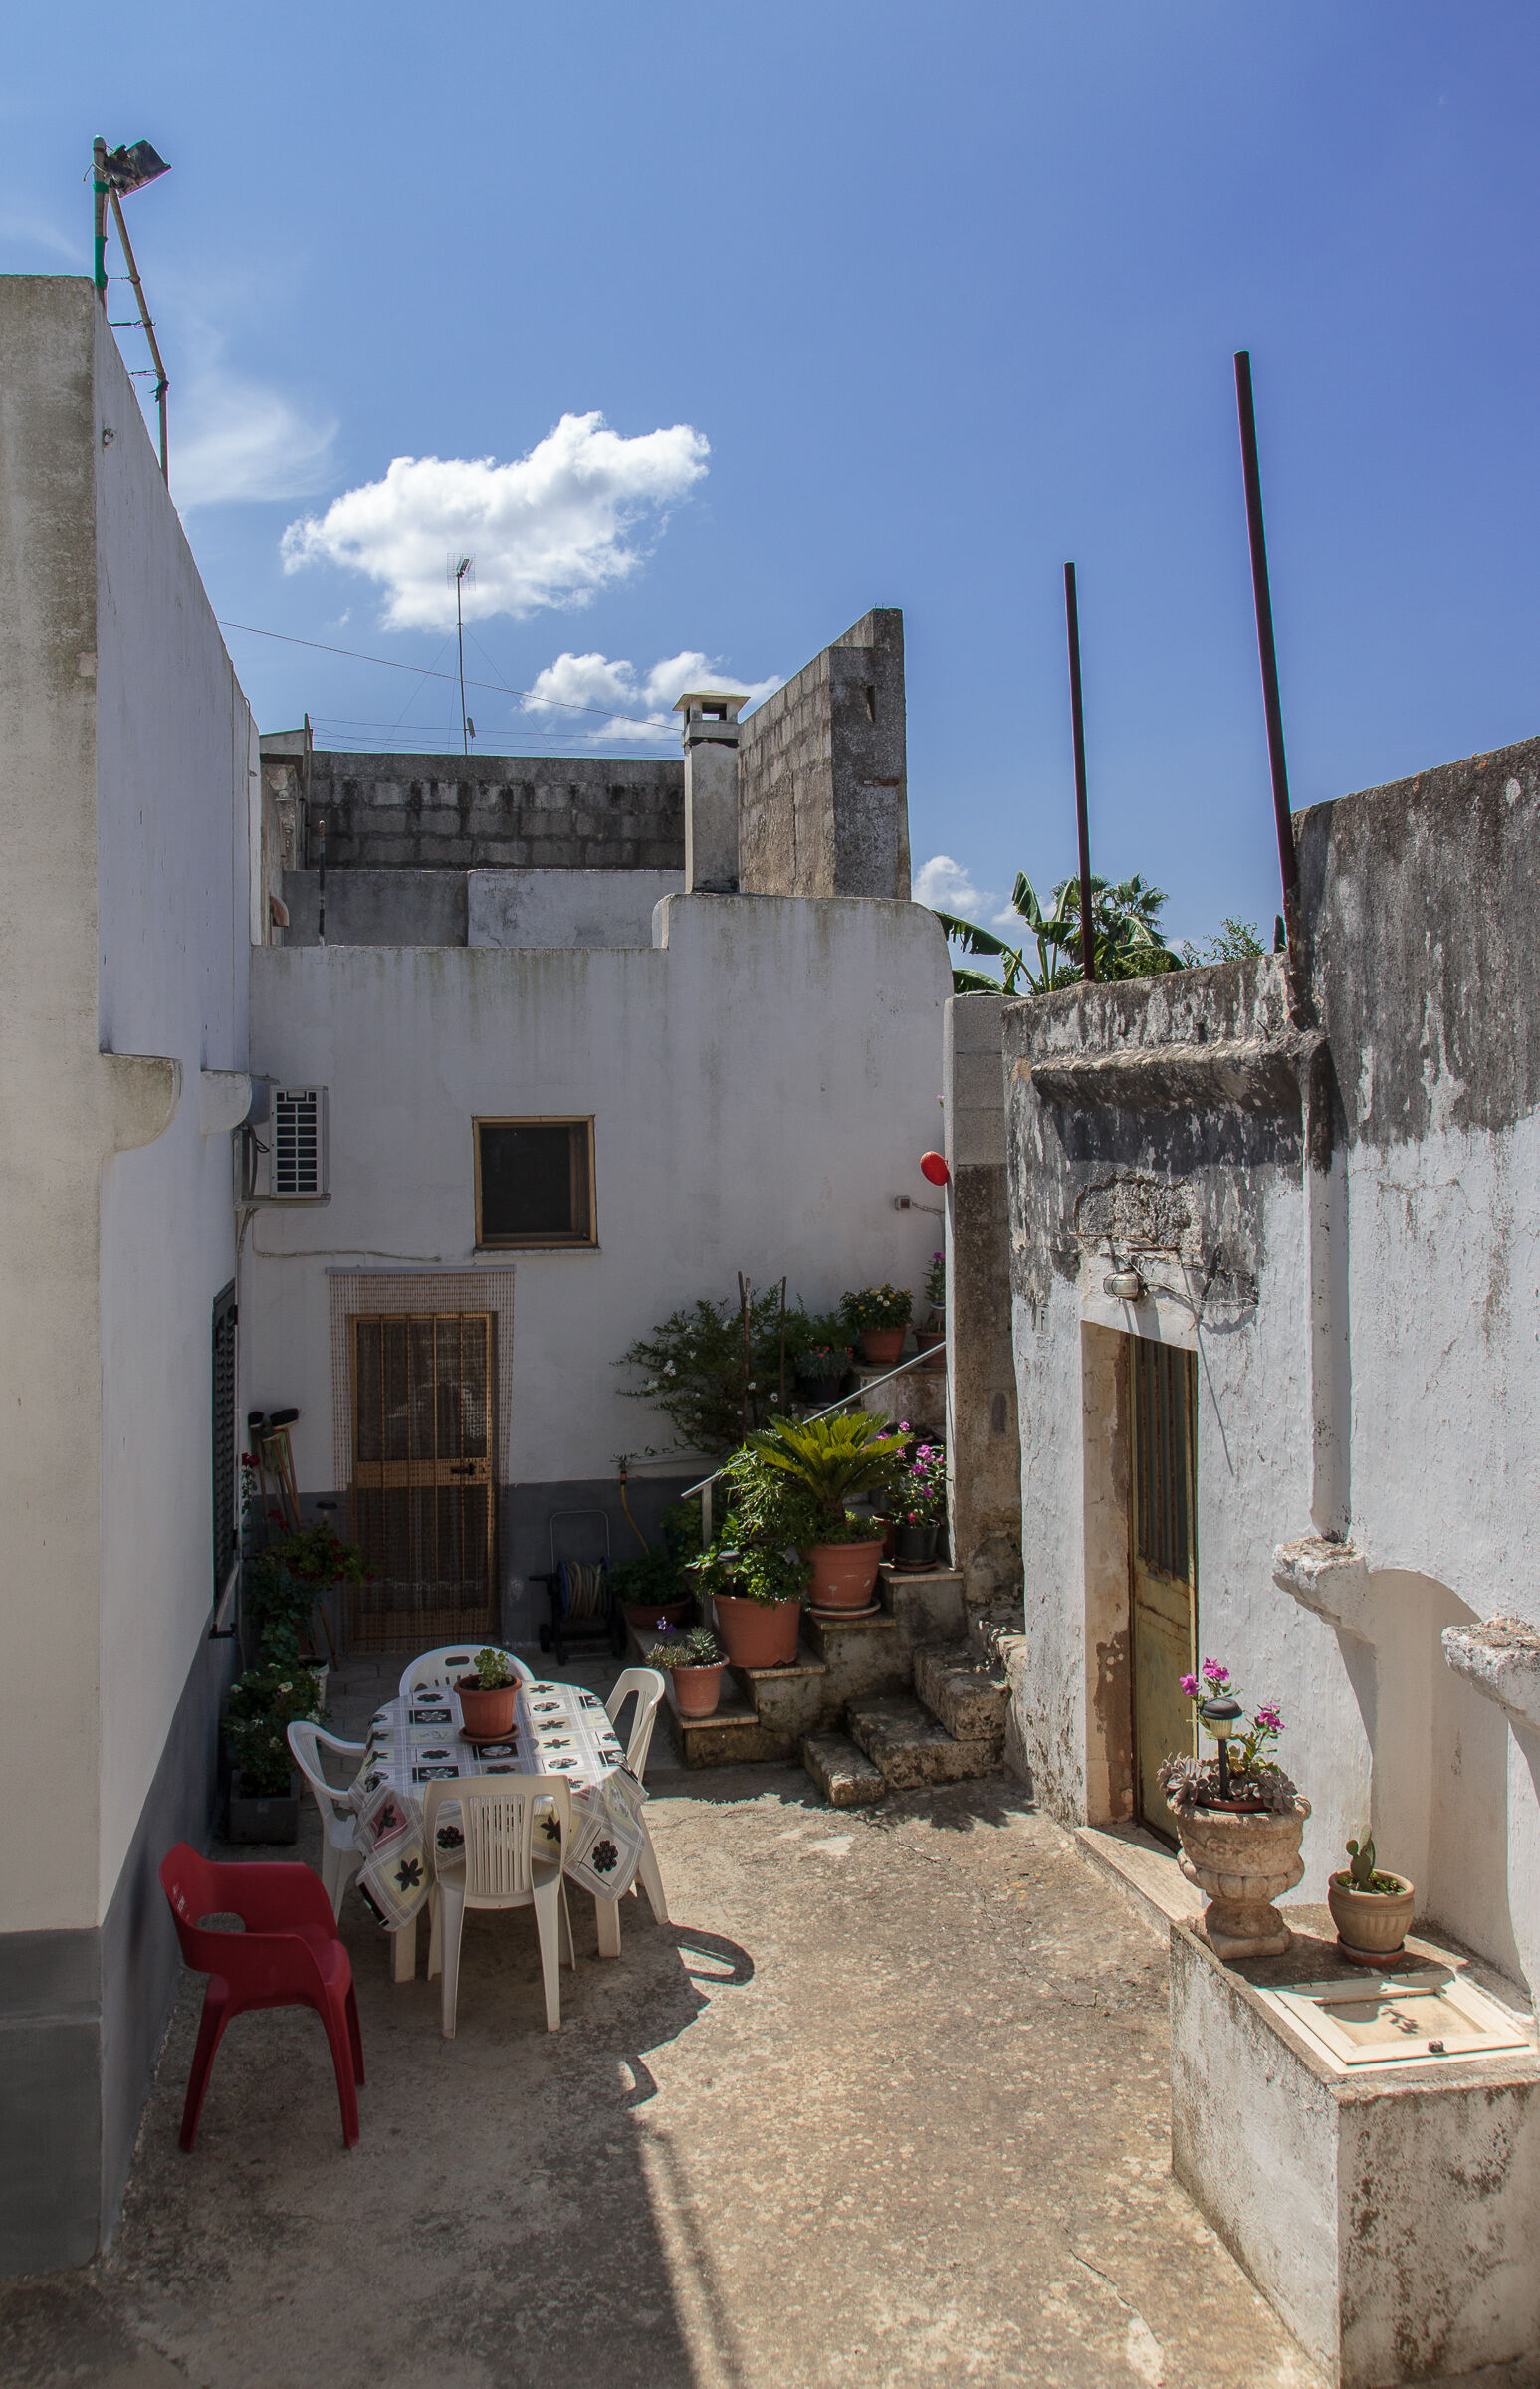 At lunch... In the alleyways Salento!...